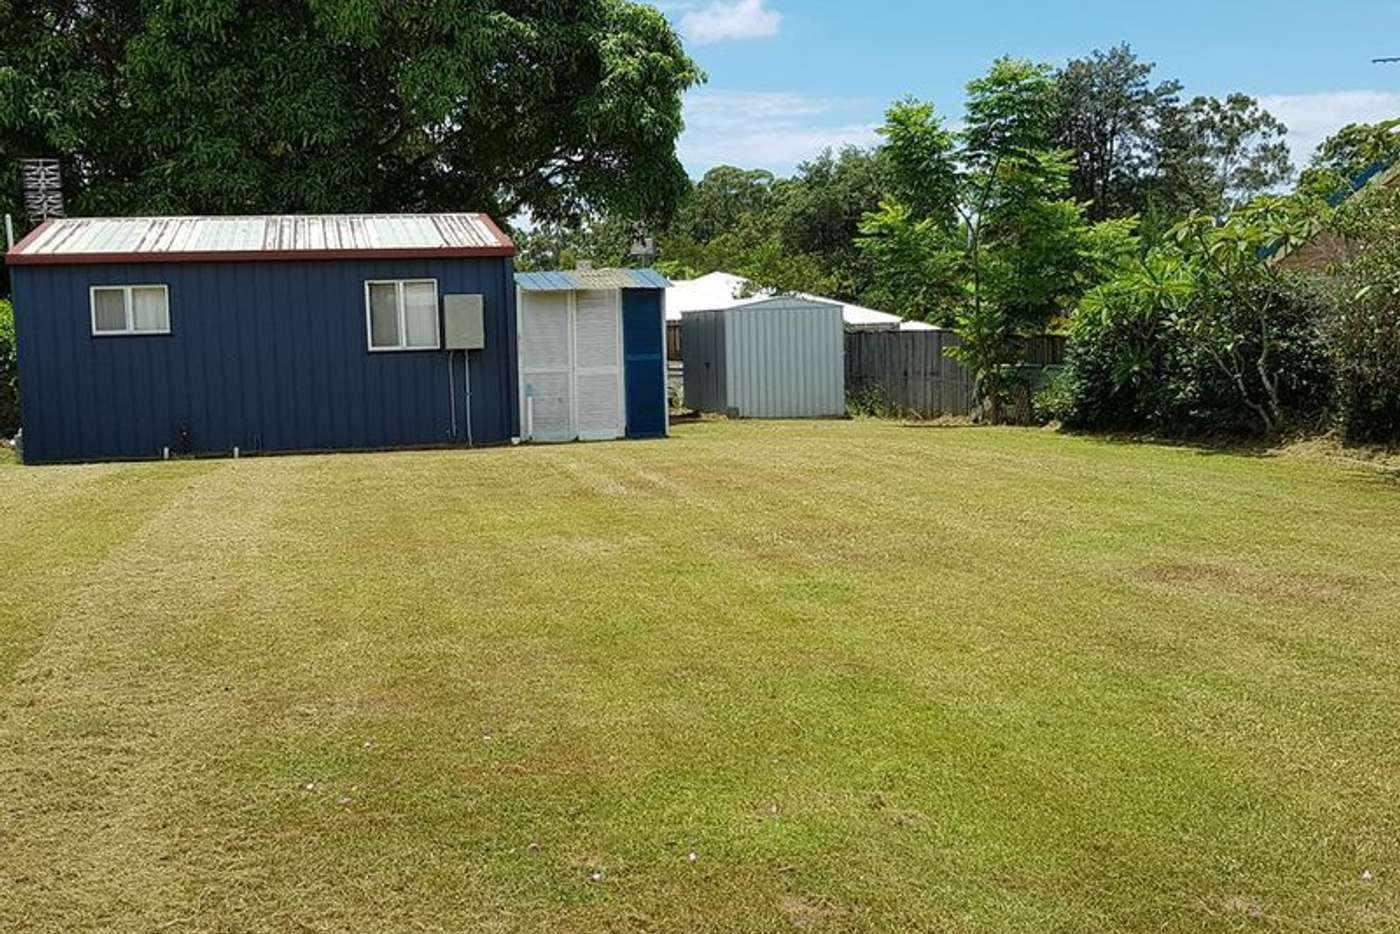 Main view of Homely residentialLand listing, 4 Dunning Street, Palmwoods QLD 4555